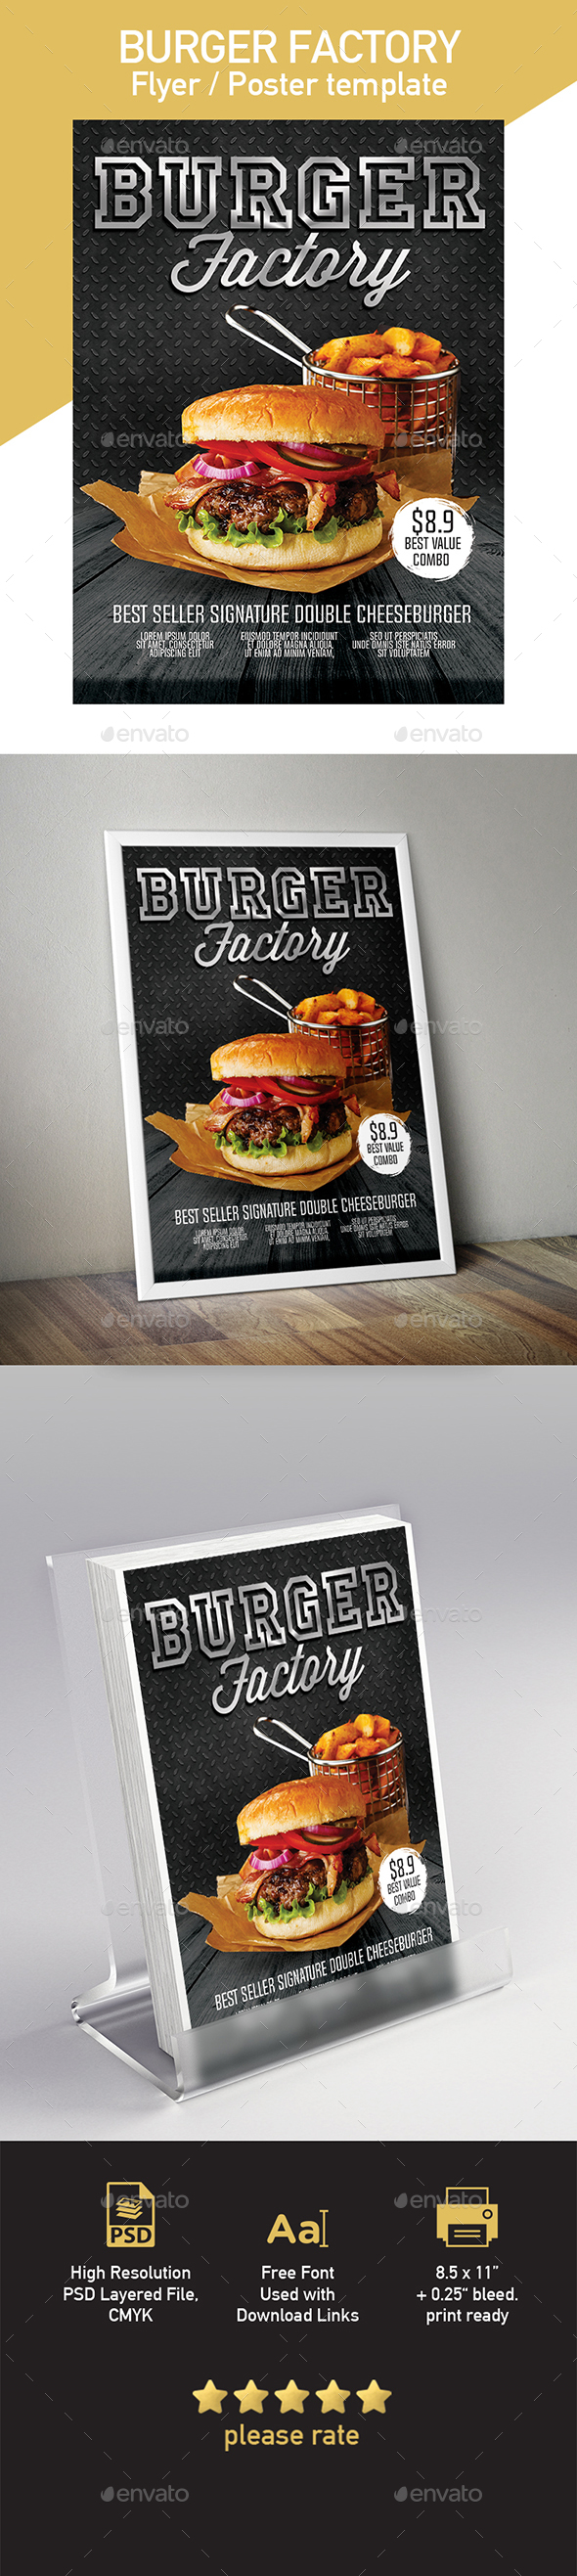 Burger Flyer & Poster Template - Restaurant Flyers